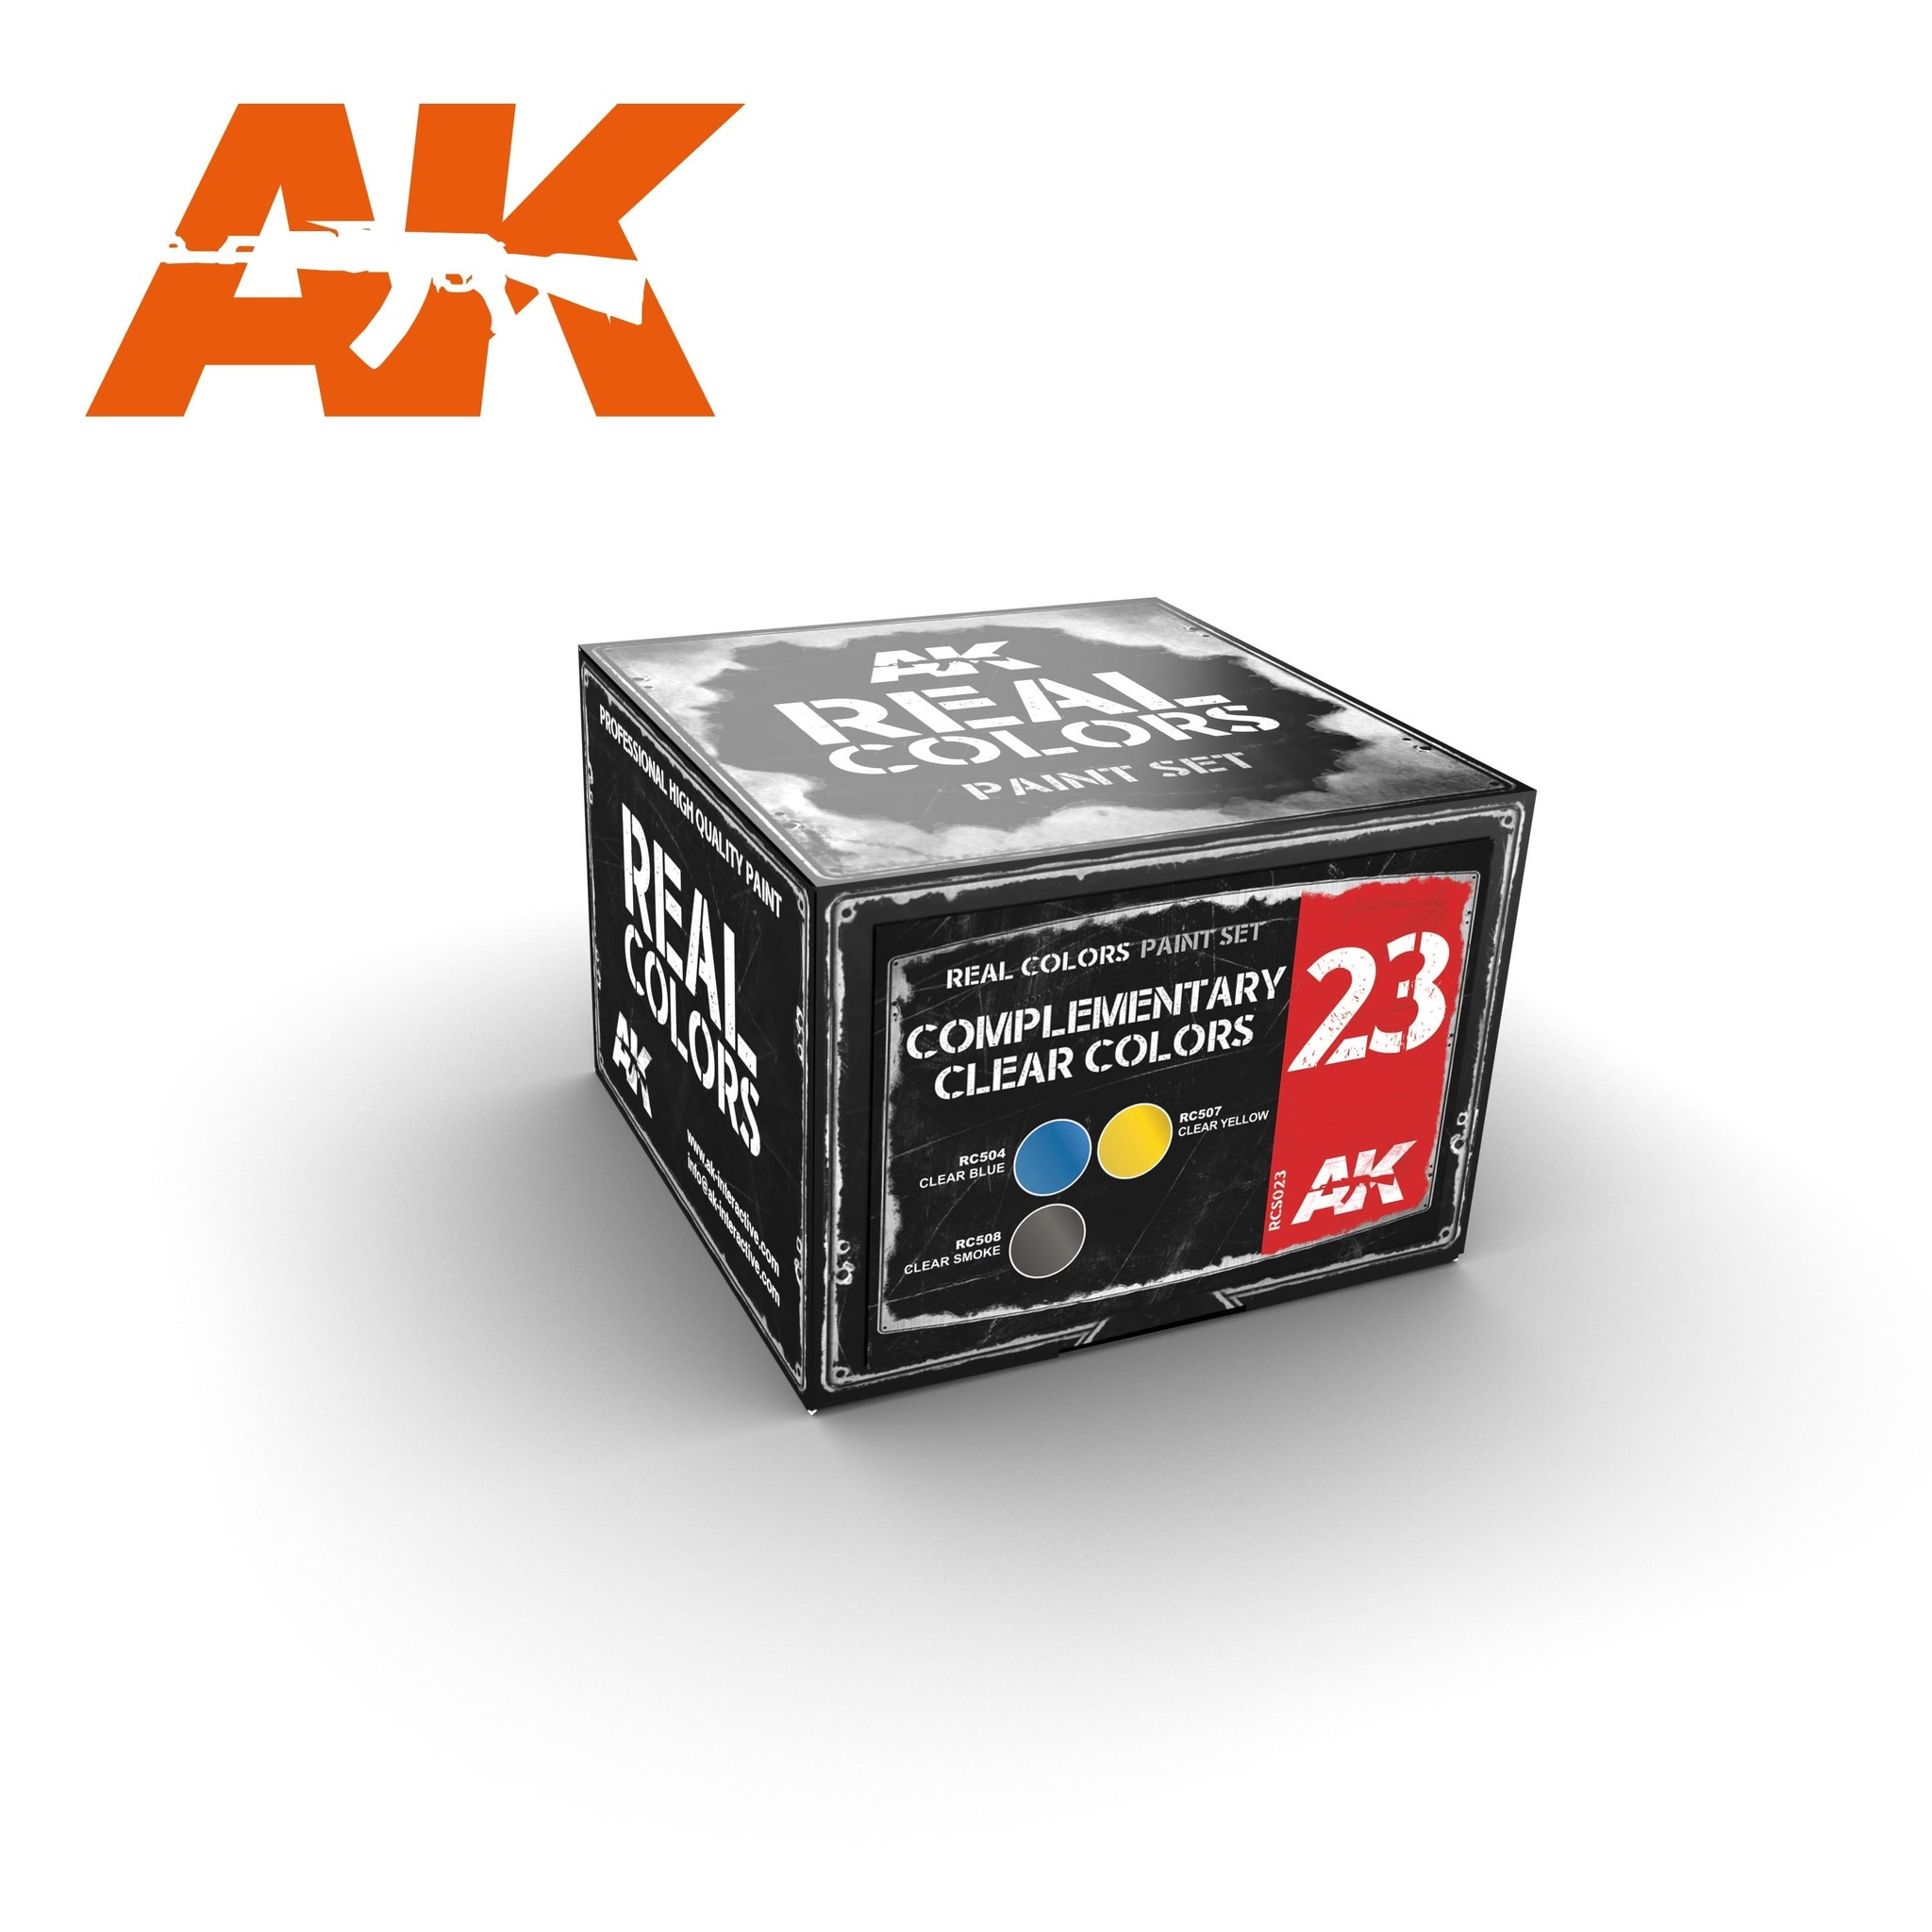 AK-Interactive Complementary Clear Colors - RCS023